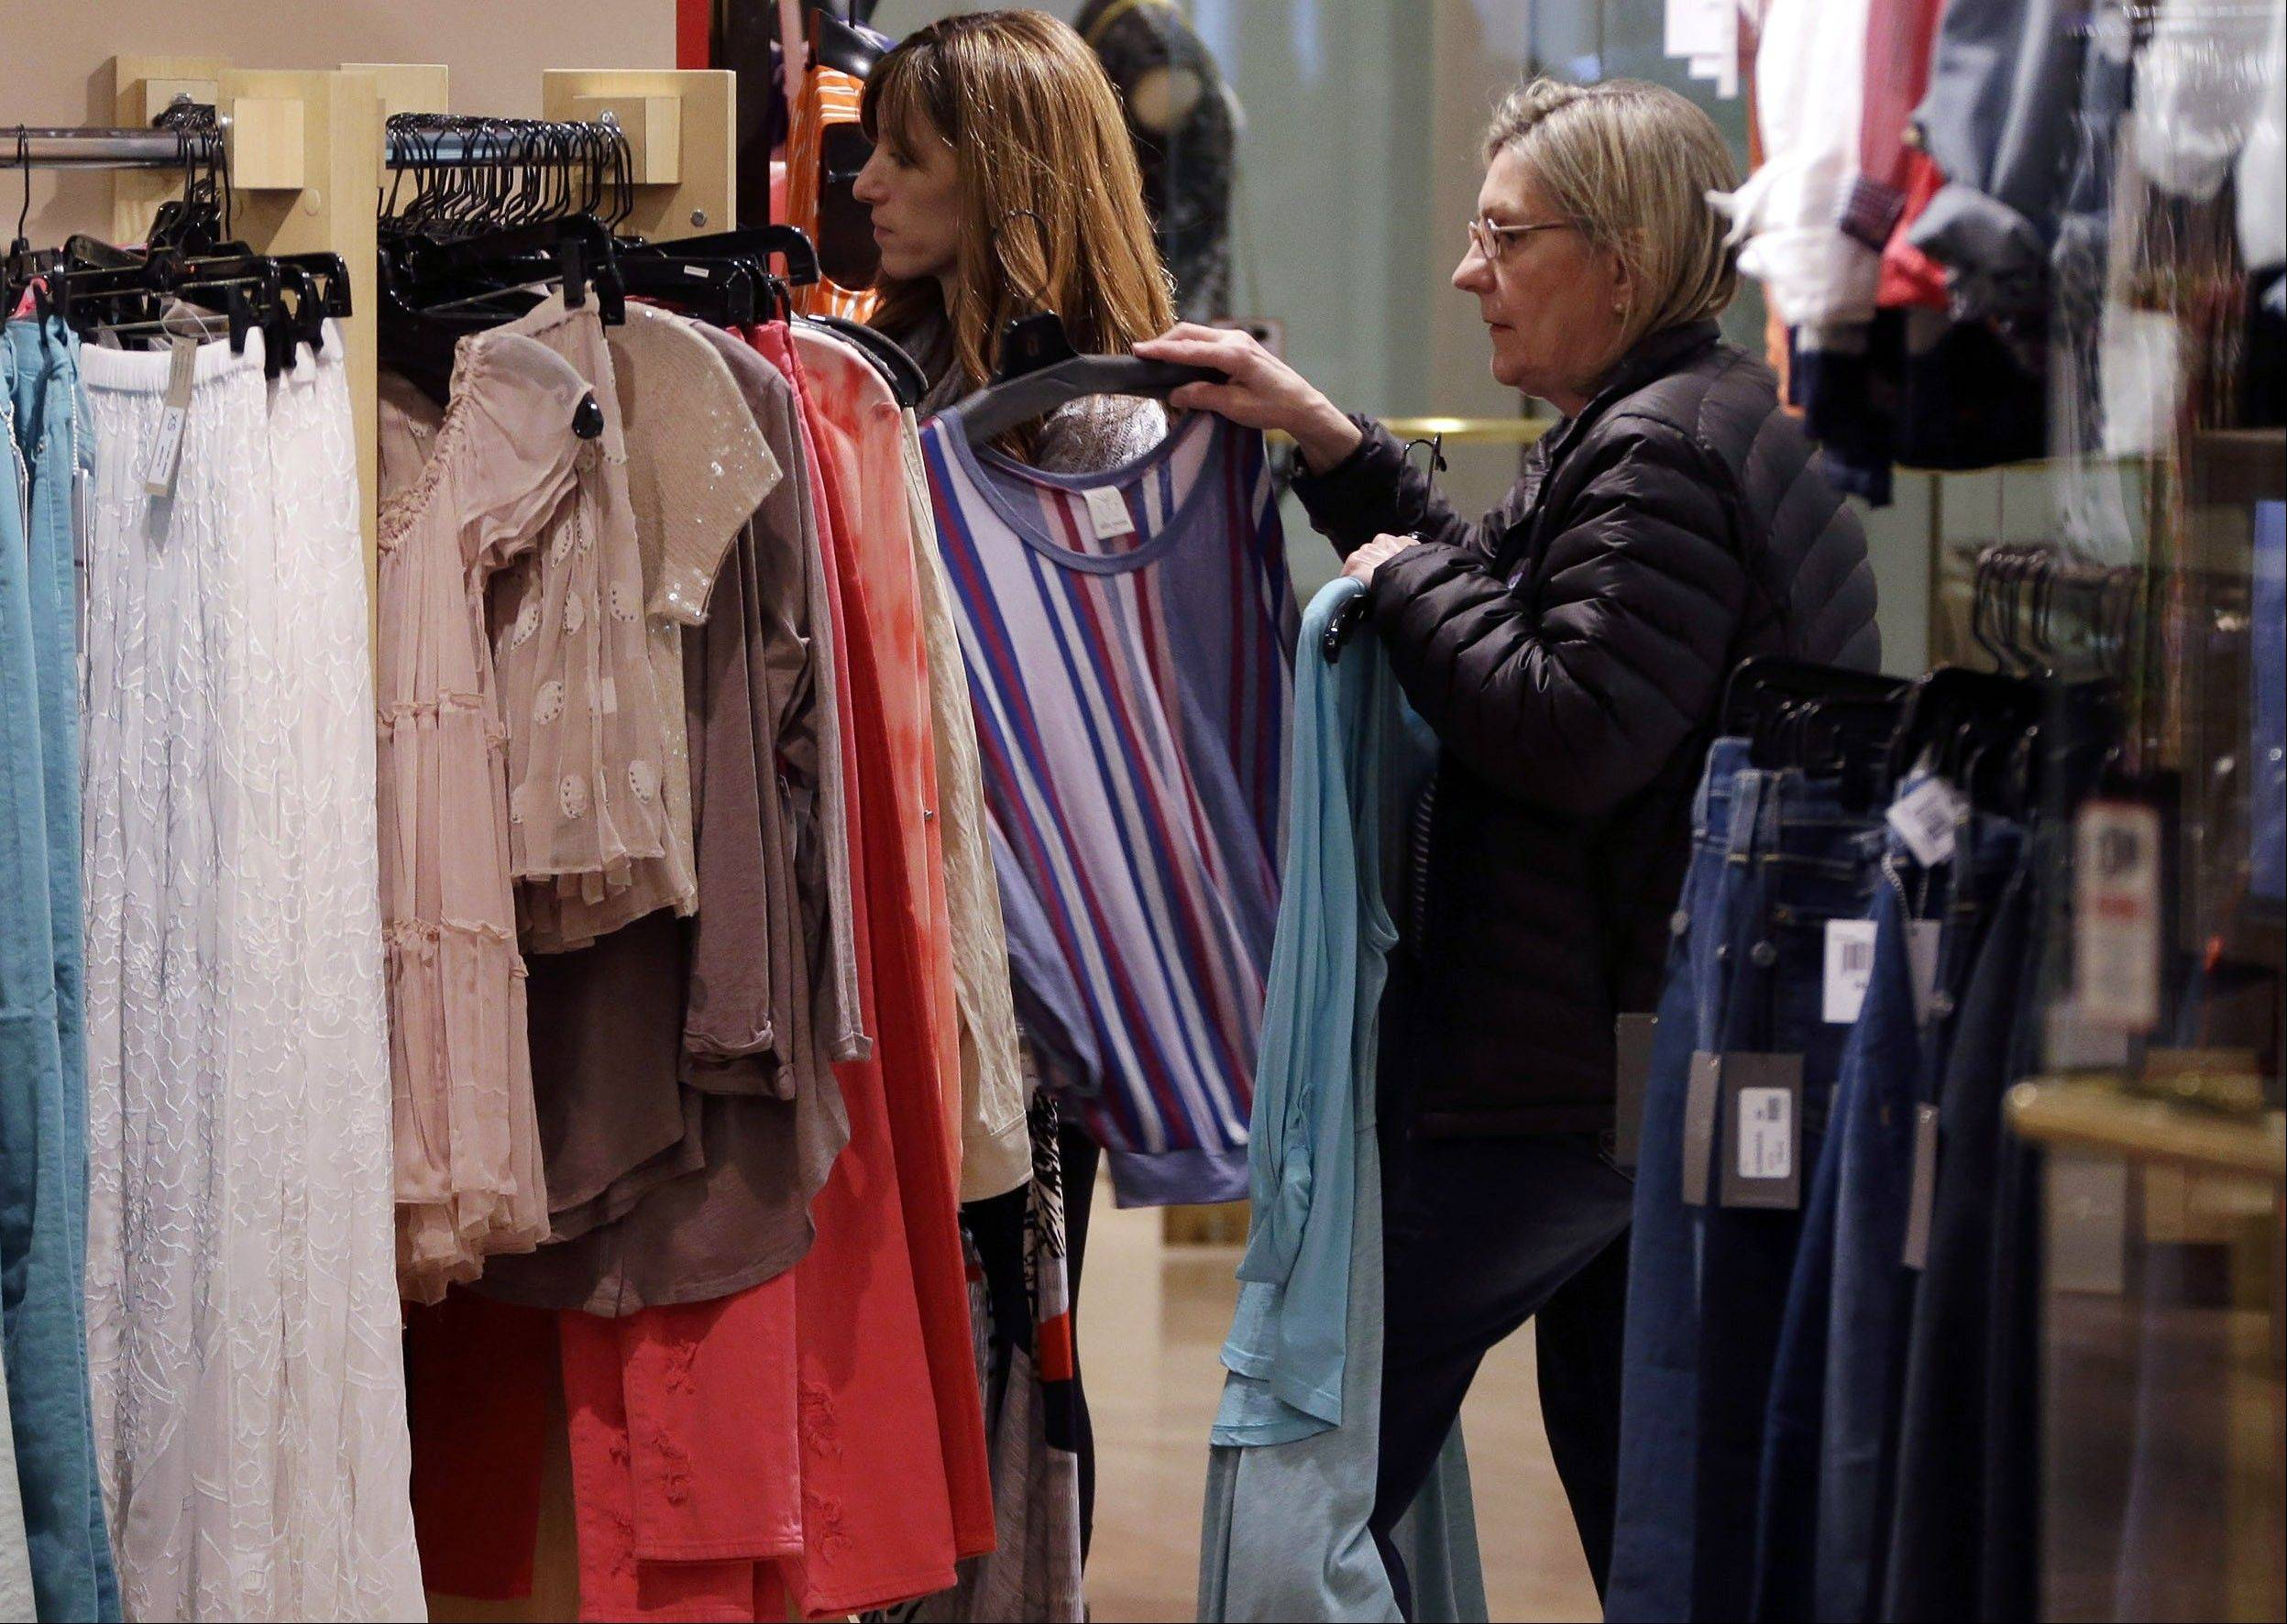 Shoppers look at clothing on sale at the Footloose store in Mt. Lebanon, Pa. The Conference Board, a New York-based private research group, said its reading of consumer confidence fell in March after rebounding last month.